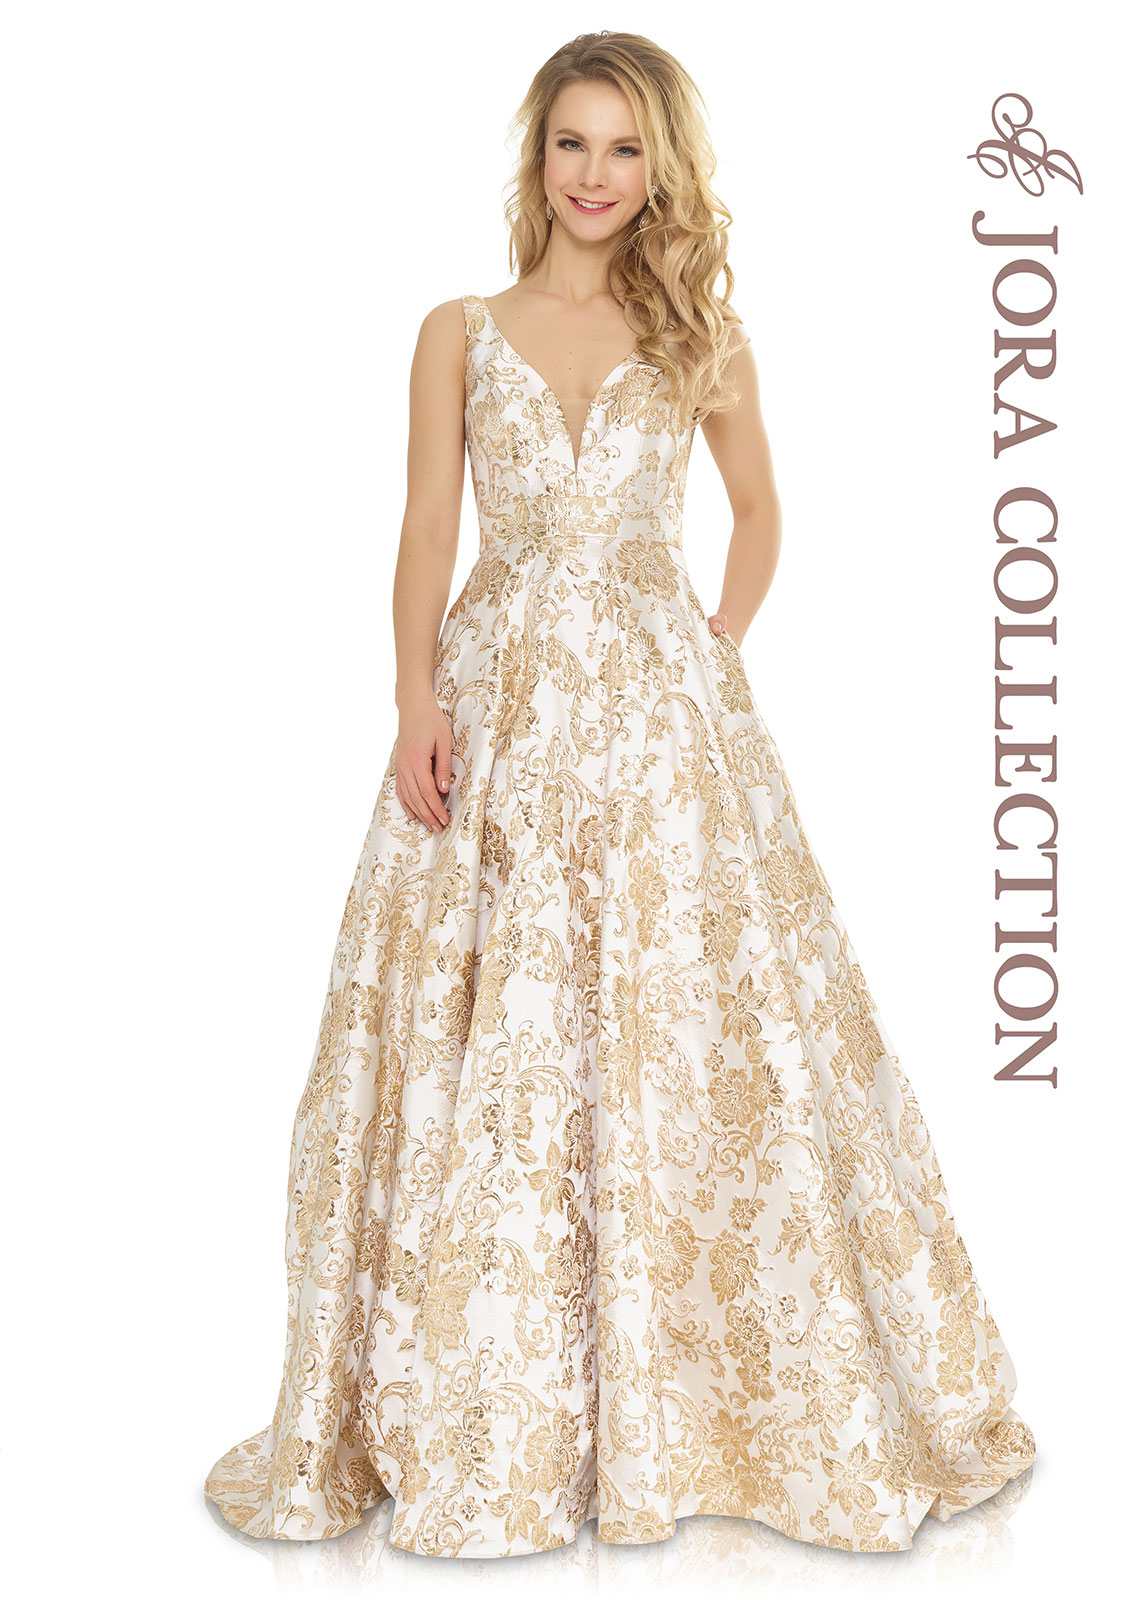 Jora Collections | Fine quality prom dresses & formal wear - Jora ...